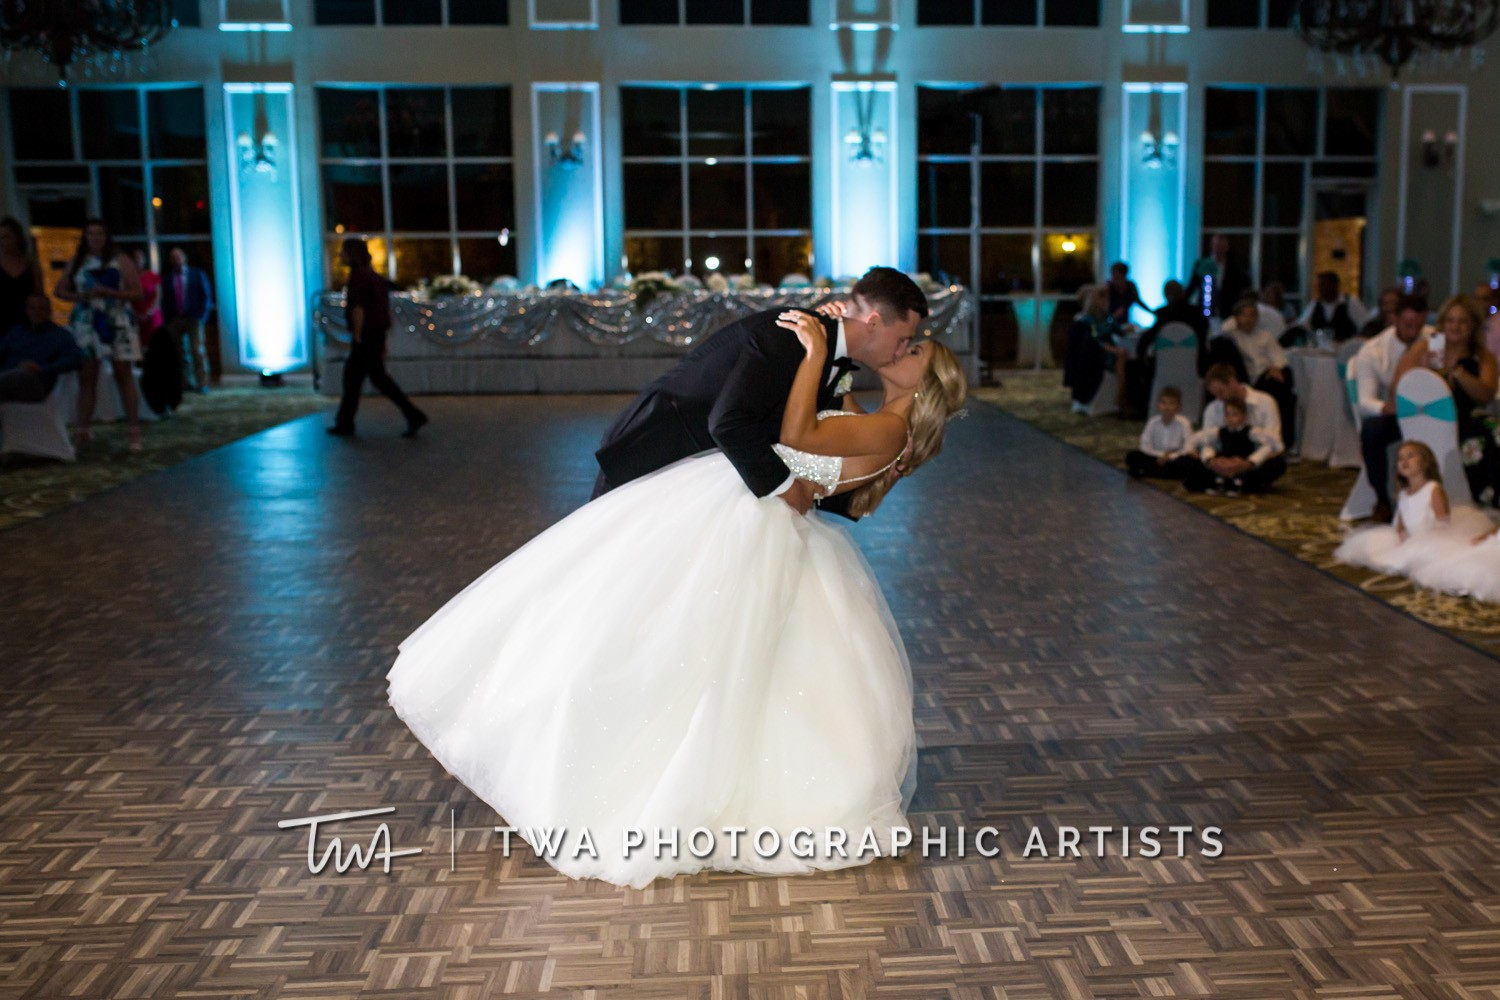 Chicago-Wedding-Photographer-TWA-Photographic-Artists-DiNolfo_s-Banquets_Augustine_Evans_MJ_WK-1359